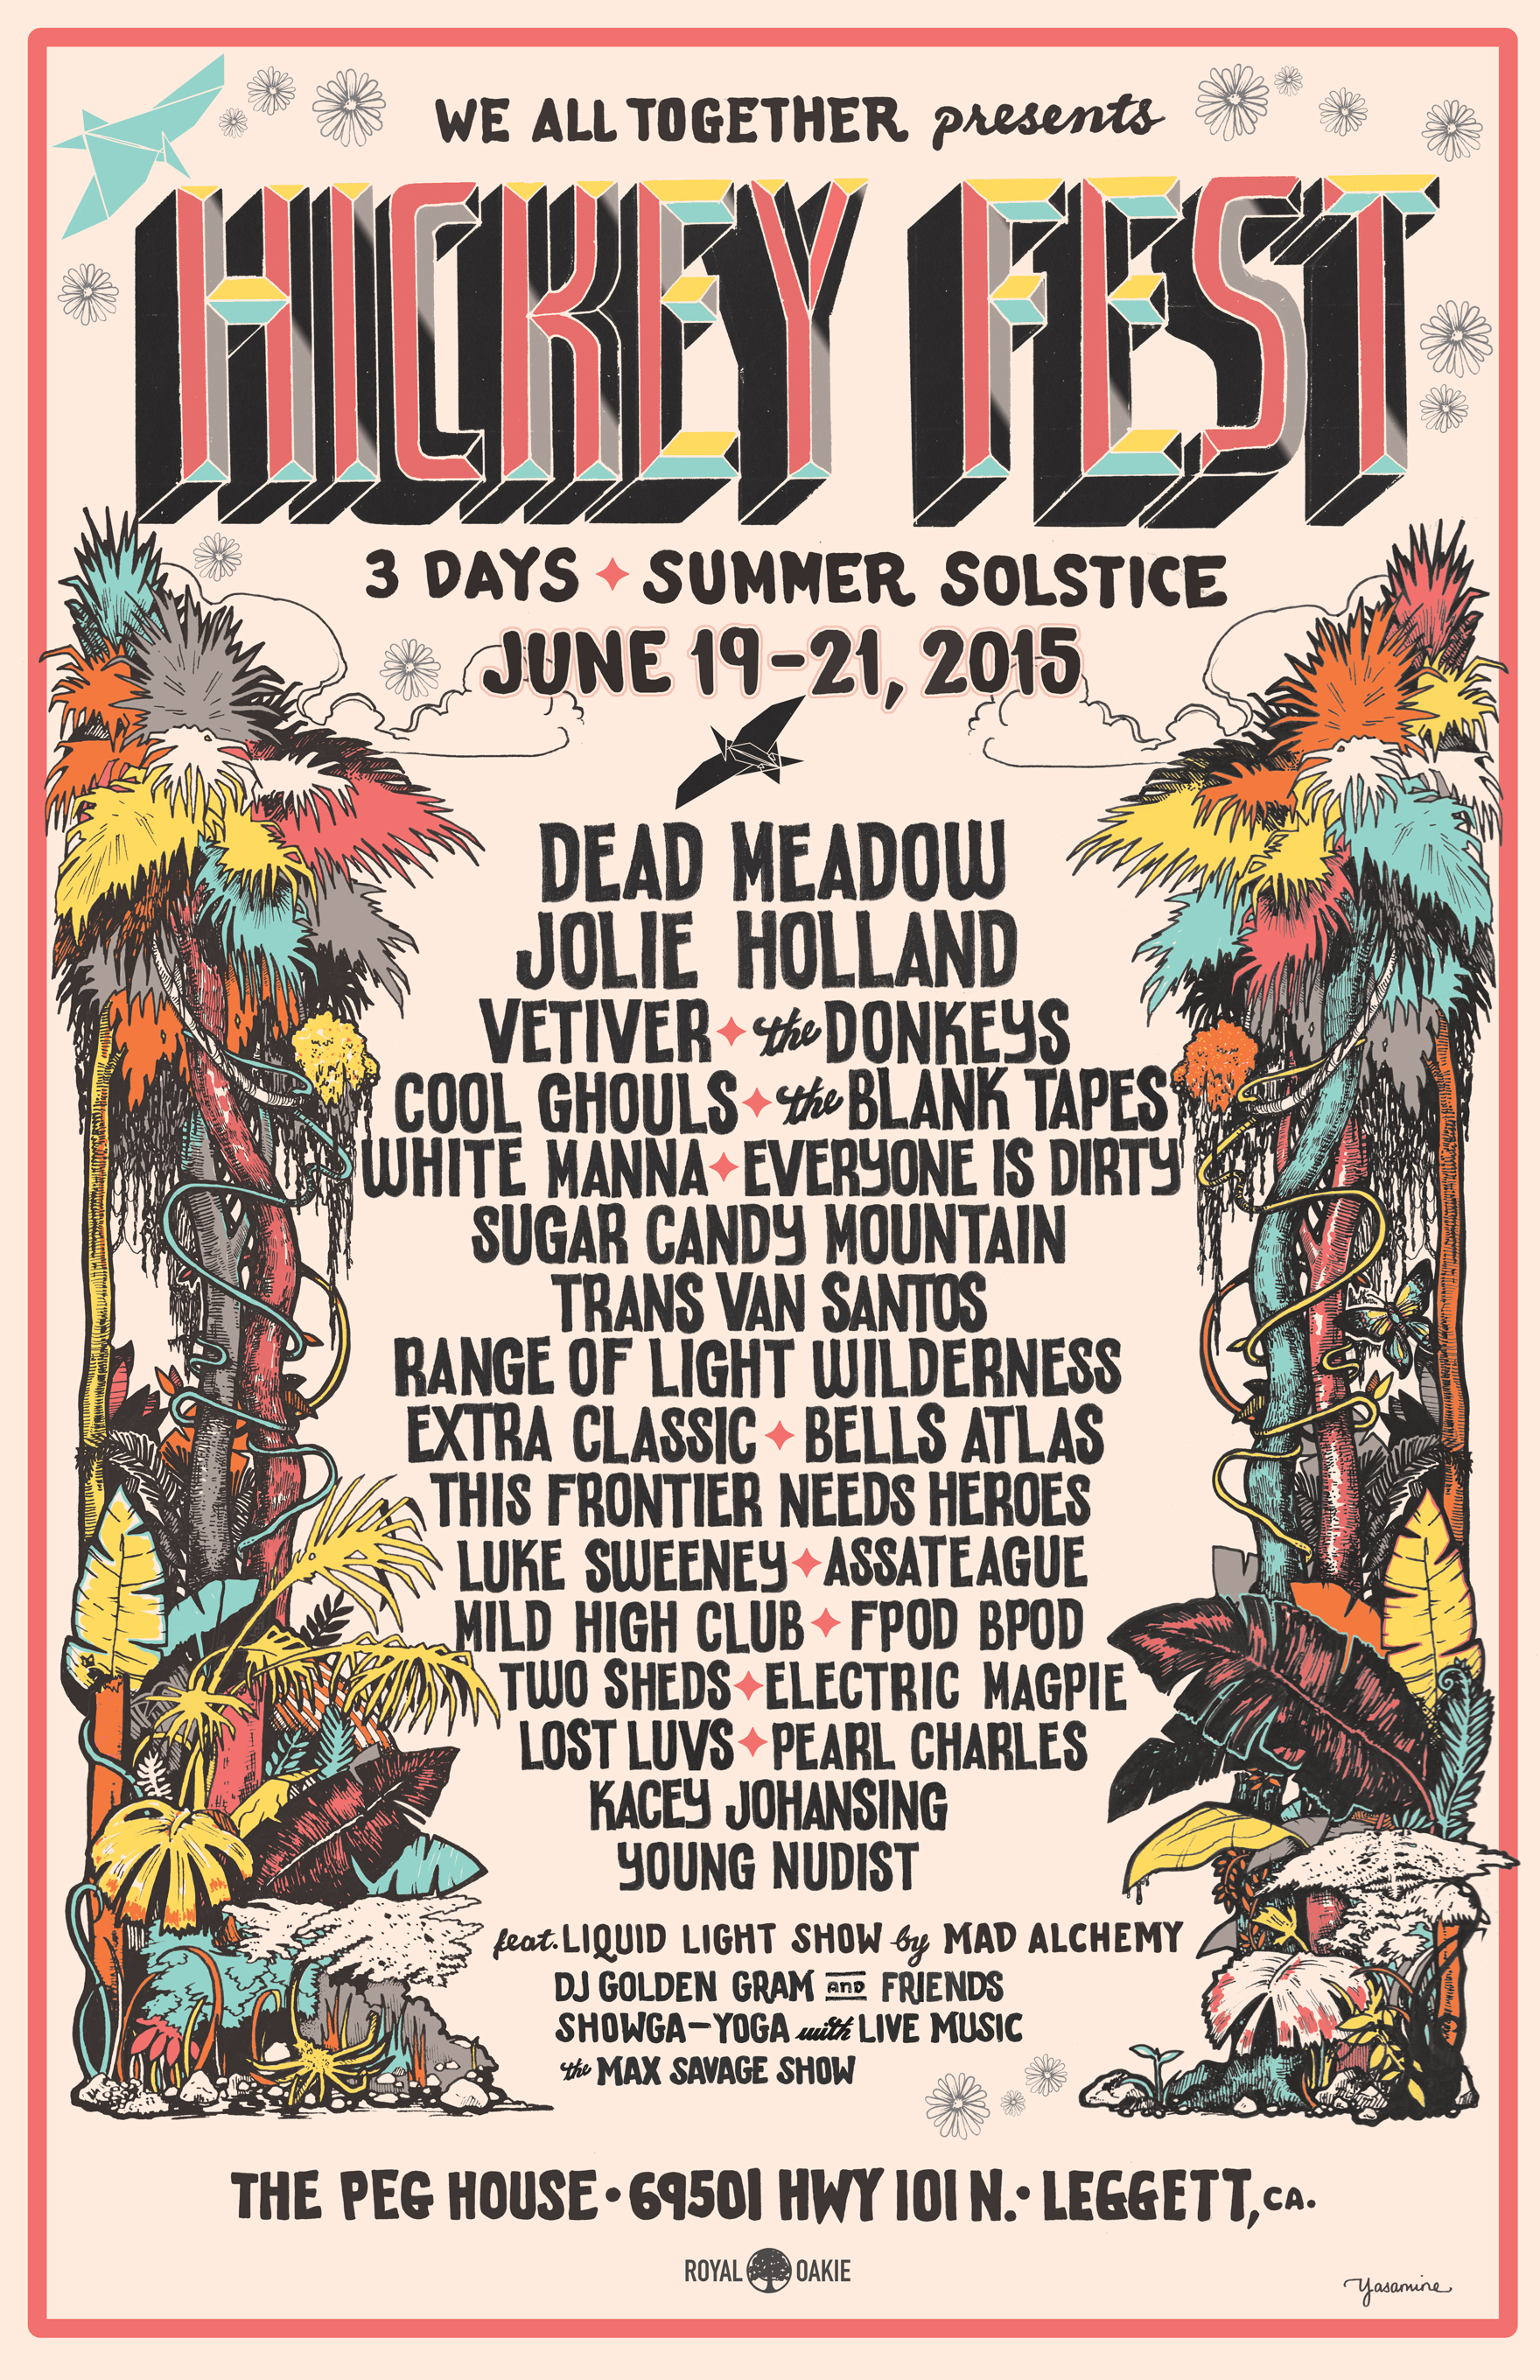 Hickey_Fest_Poster_2015_by_Yasamine_June-WEB.jpg